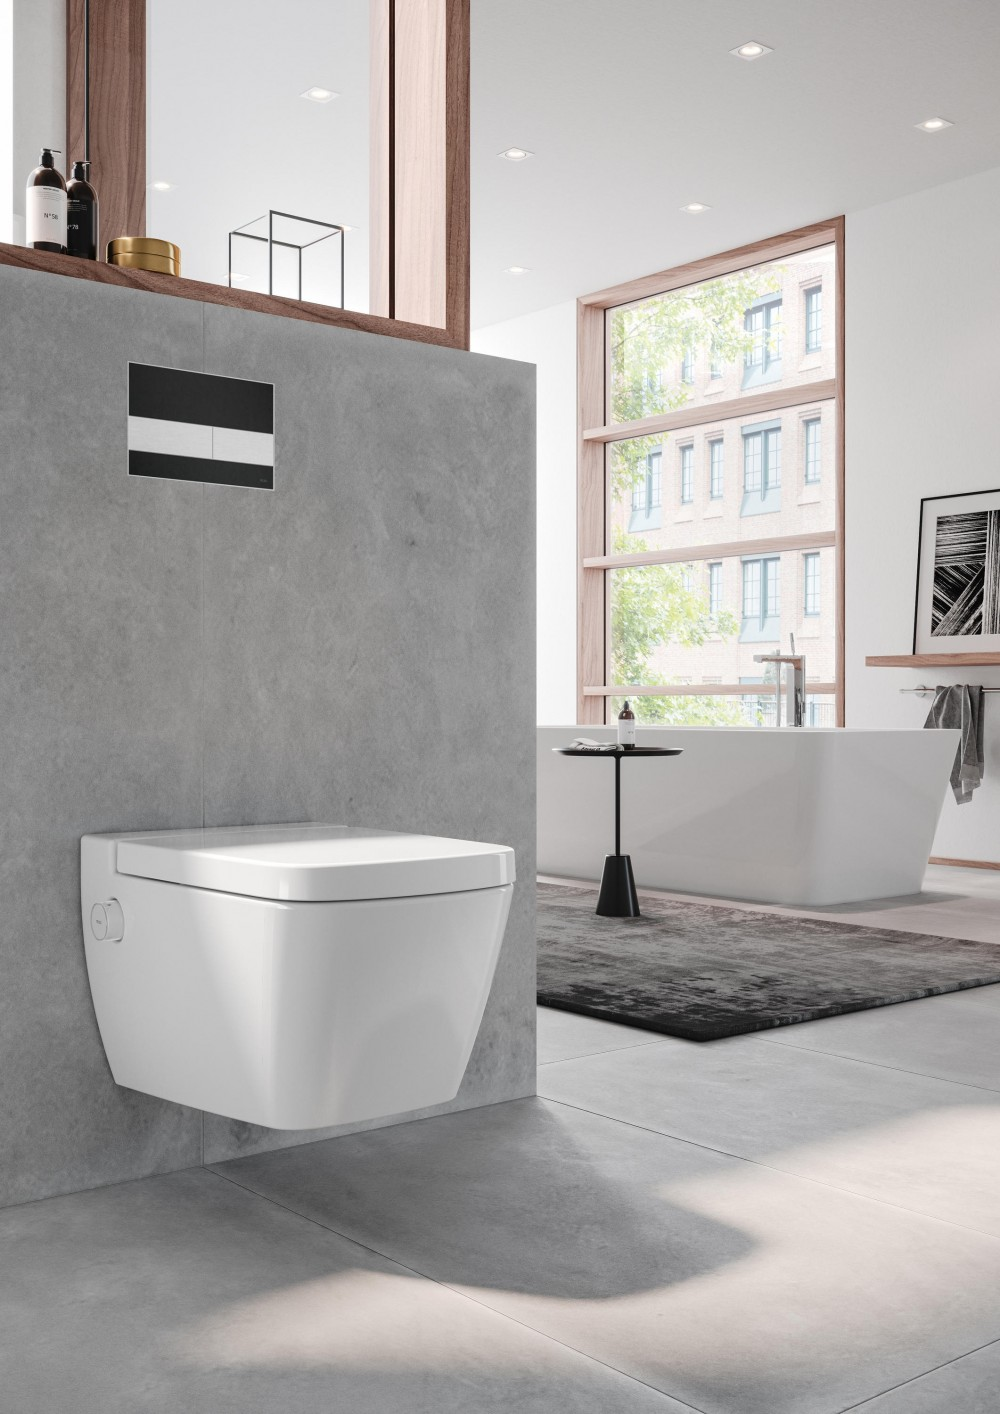 TECEone toilet ceramics with shower function 9700200 TECEone toilet seat with lid 9700600